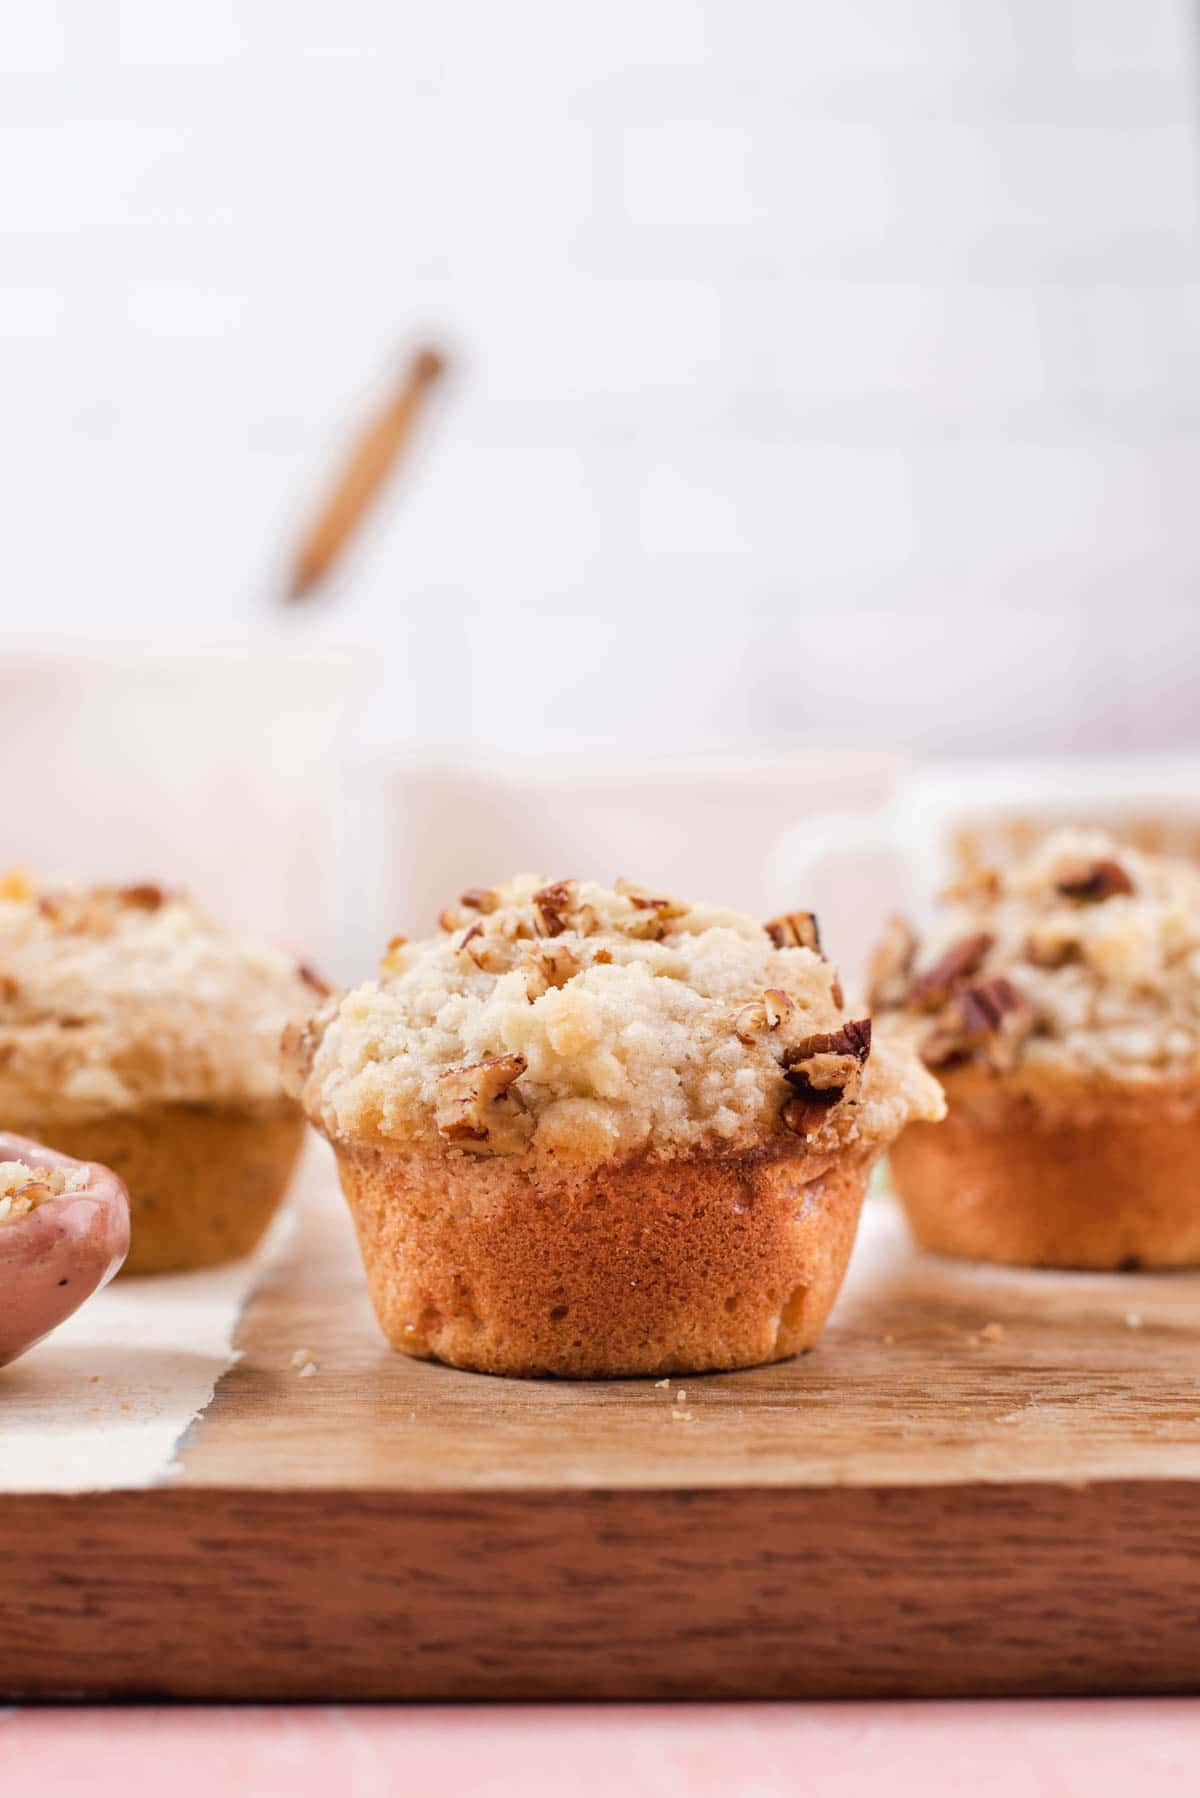 Muffin with crumb topping with two more muffins in the background